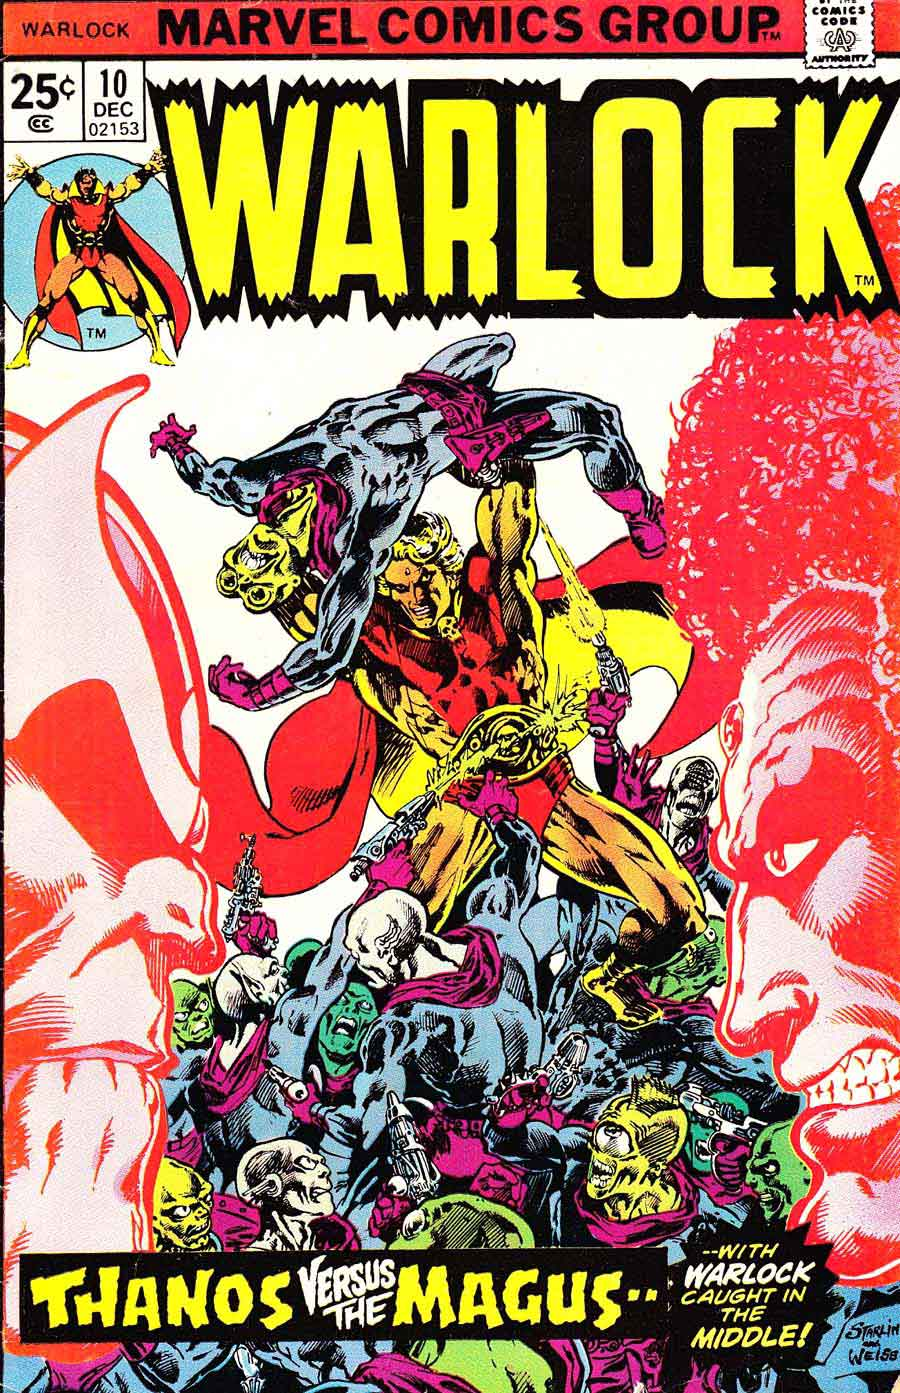 Warlock v1 #10 marvel 1970s bronze age comic book cover art by Jim Starlin